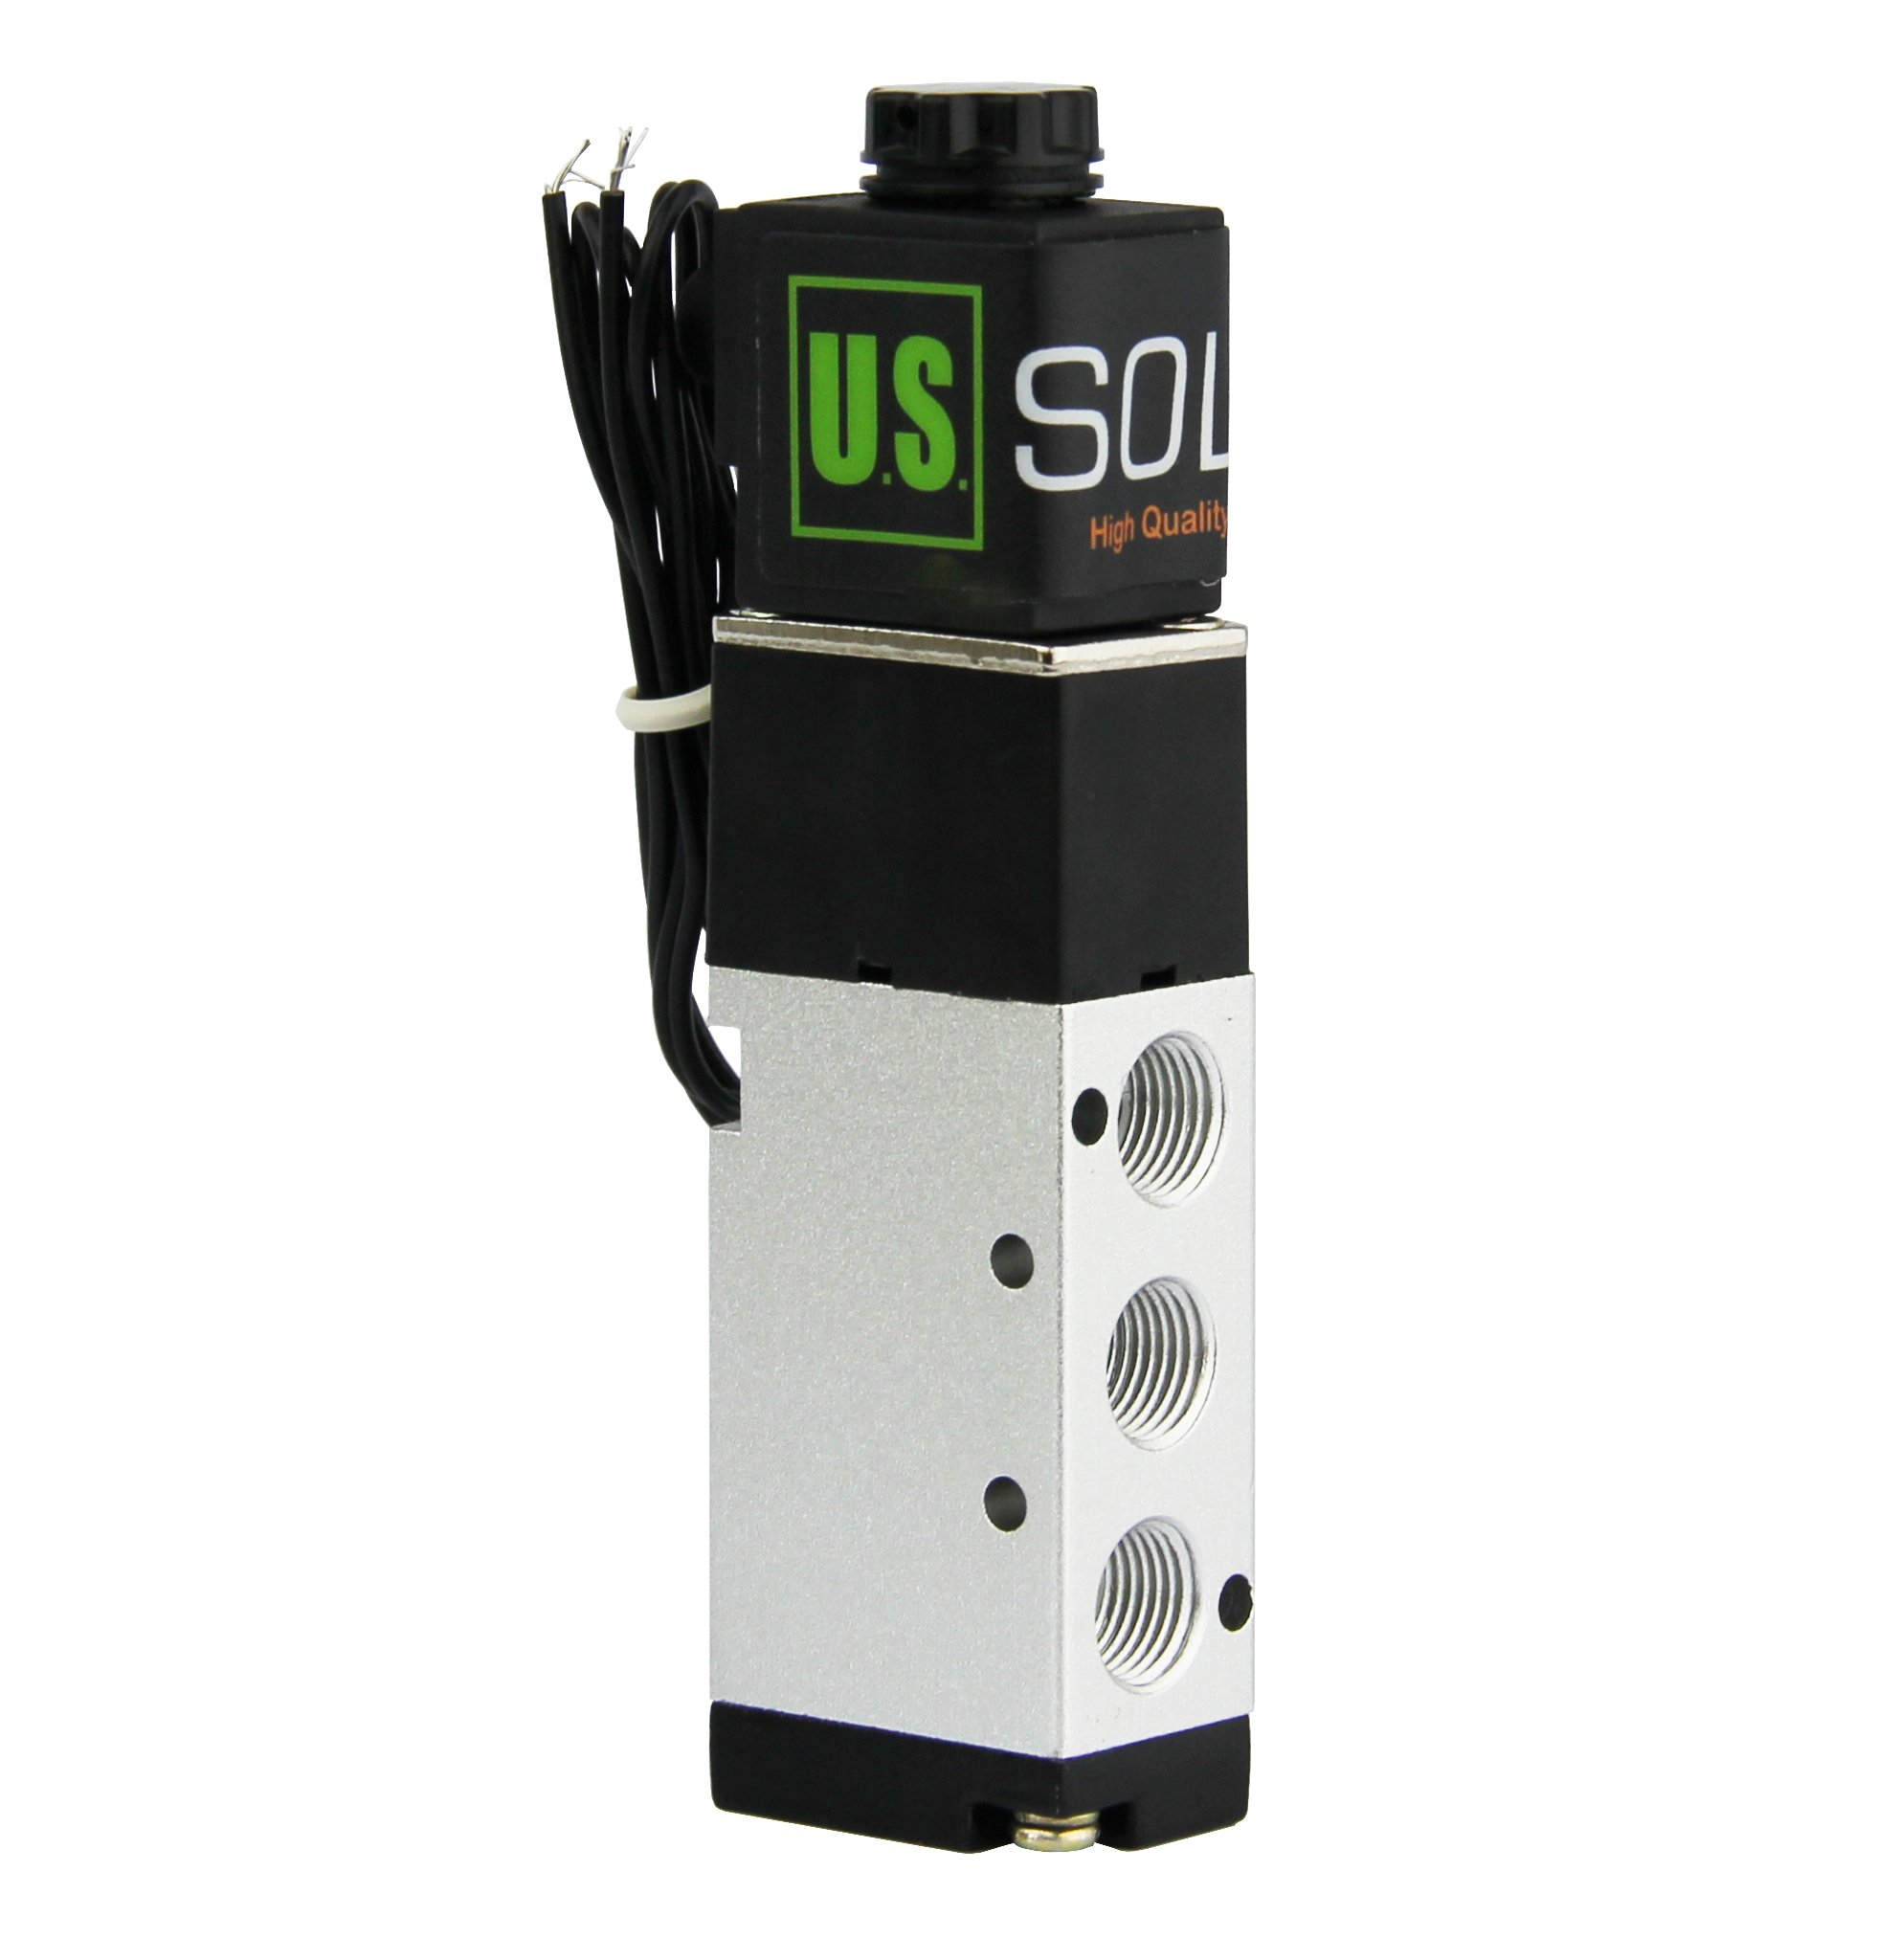 1/8'' NPT 5 Way 2 Position Pneumatic Electric Solenoid Valve DC 12 V from U.S. SOLID by U.S. Solid